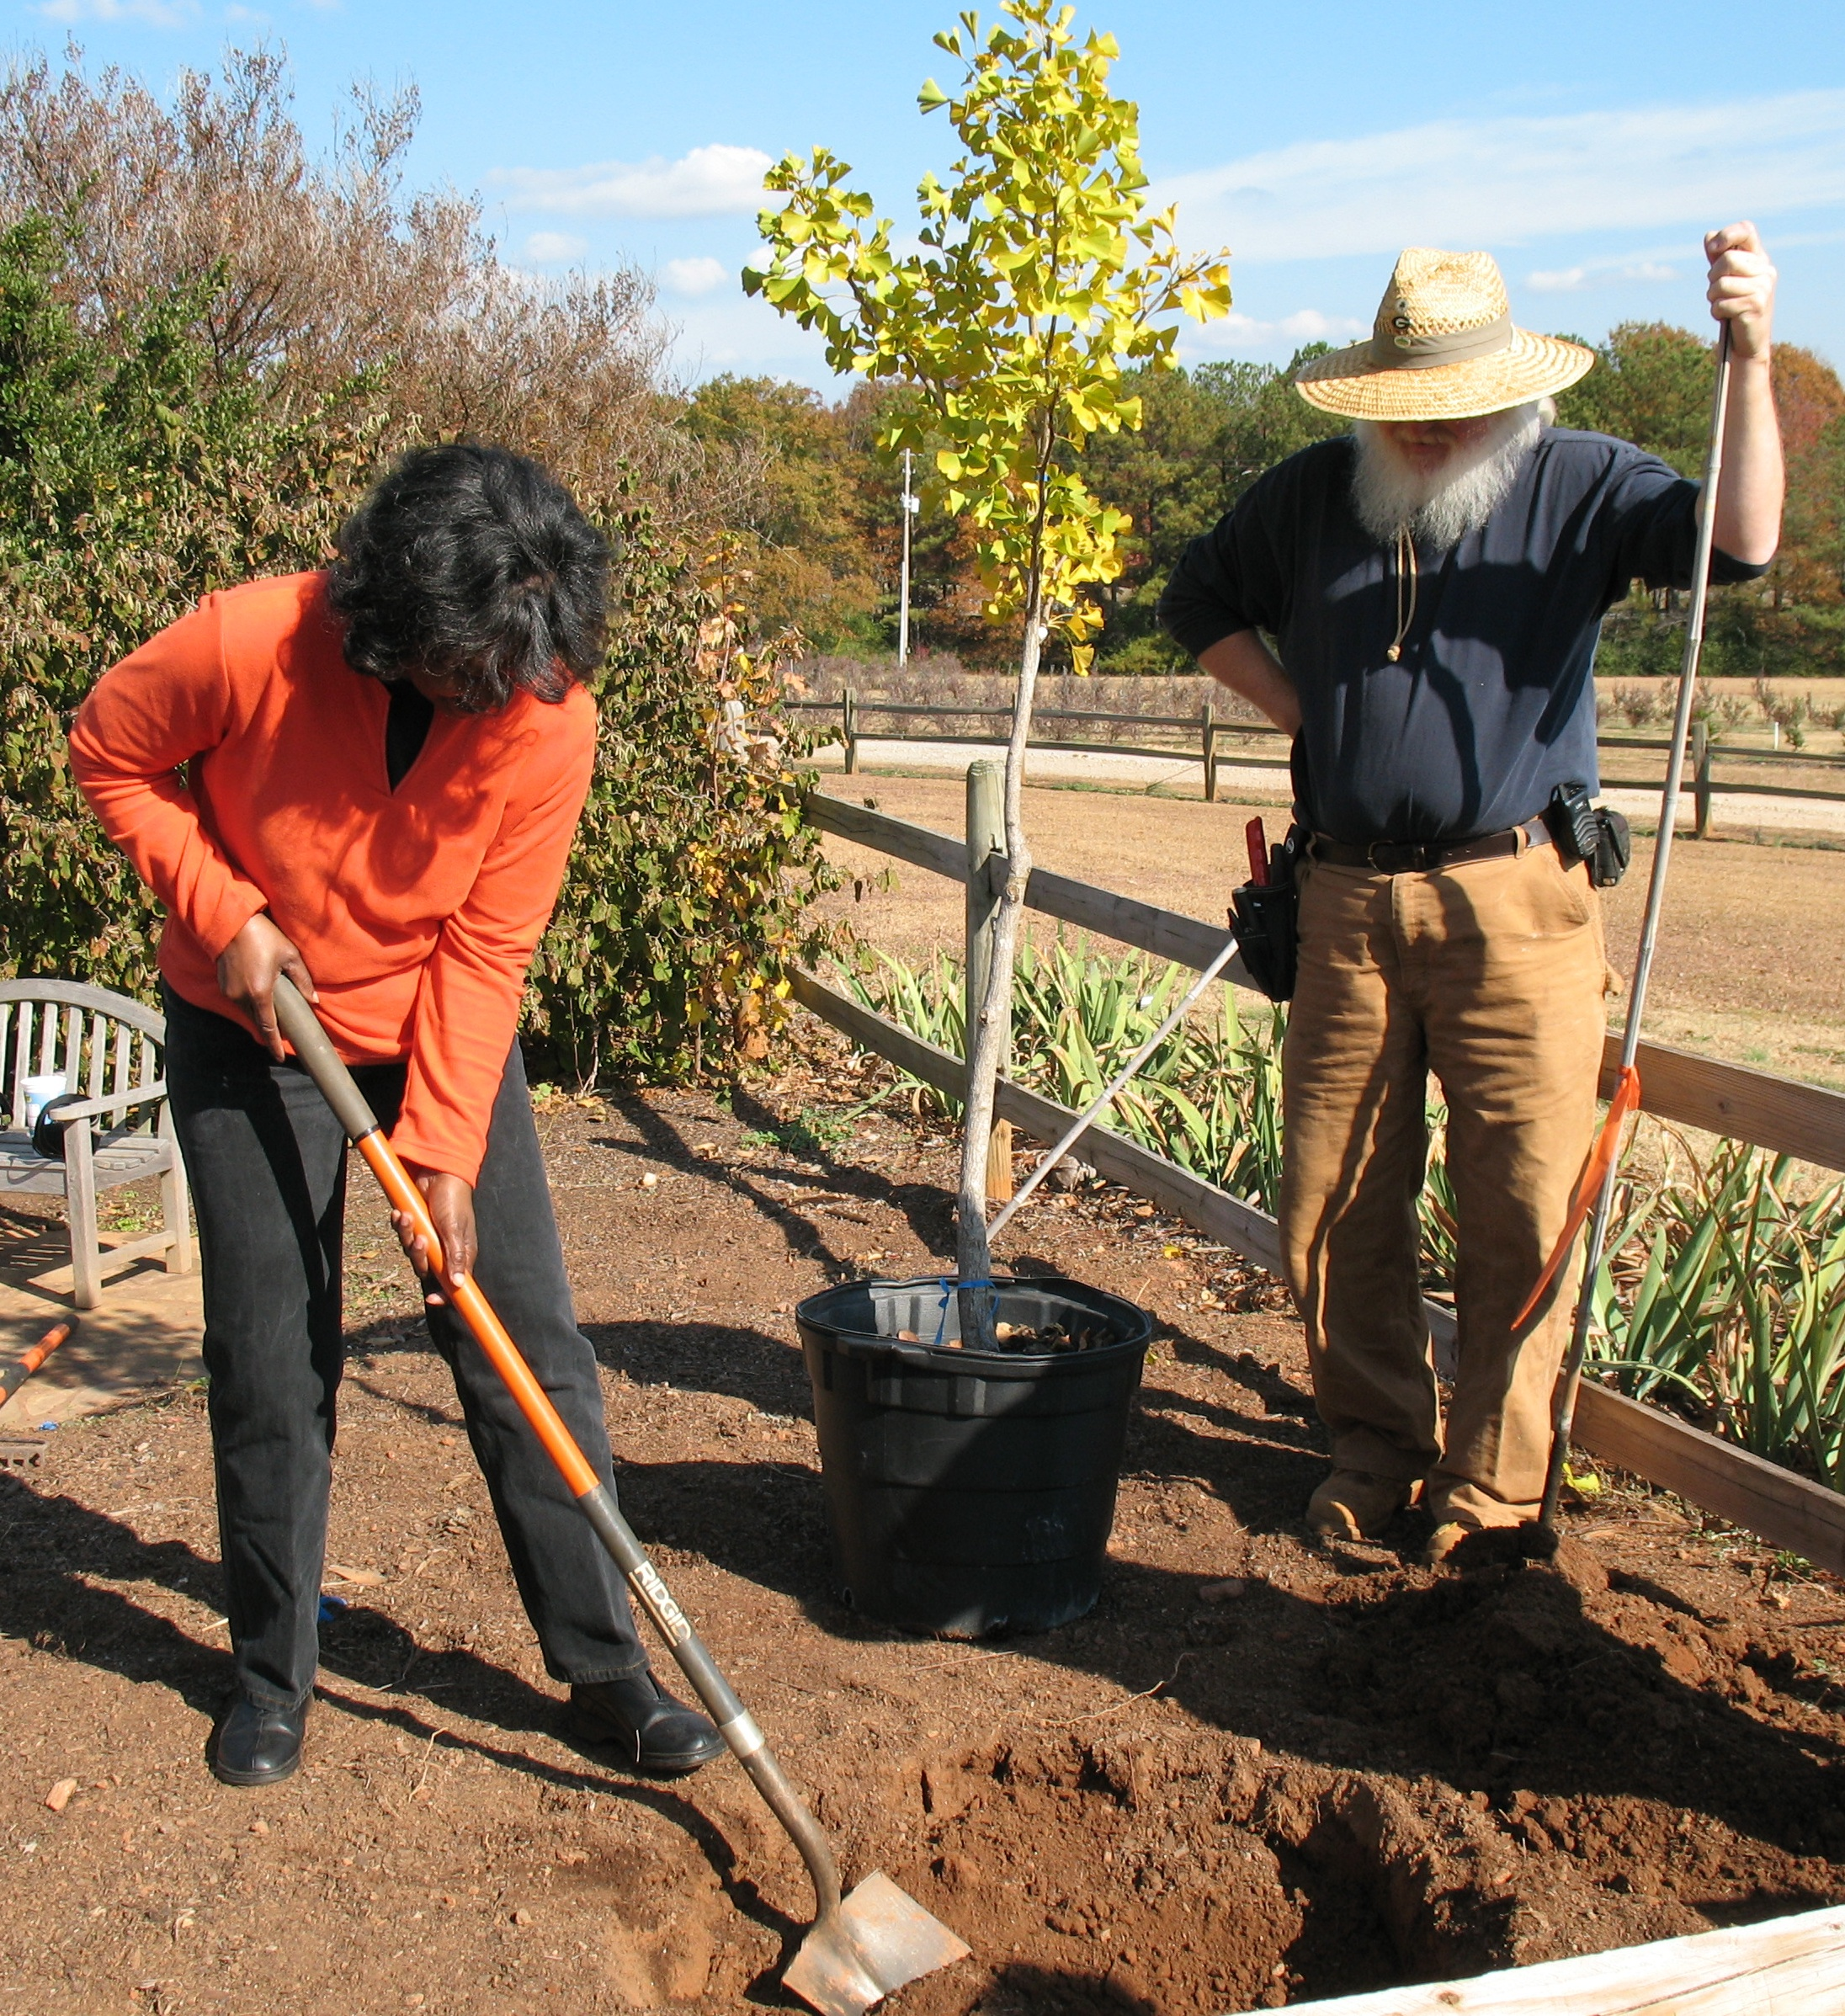 Fall is the perfect time to install new trees or shrubs or to move existing ones to new locations. University of Georgia Cooperative Extension experts recommend digging the planting hole two to three times the diameter of the soil ball.